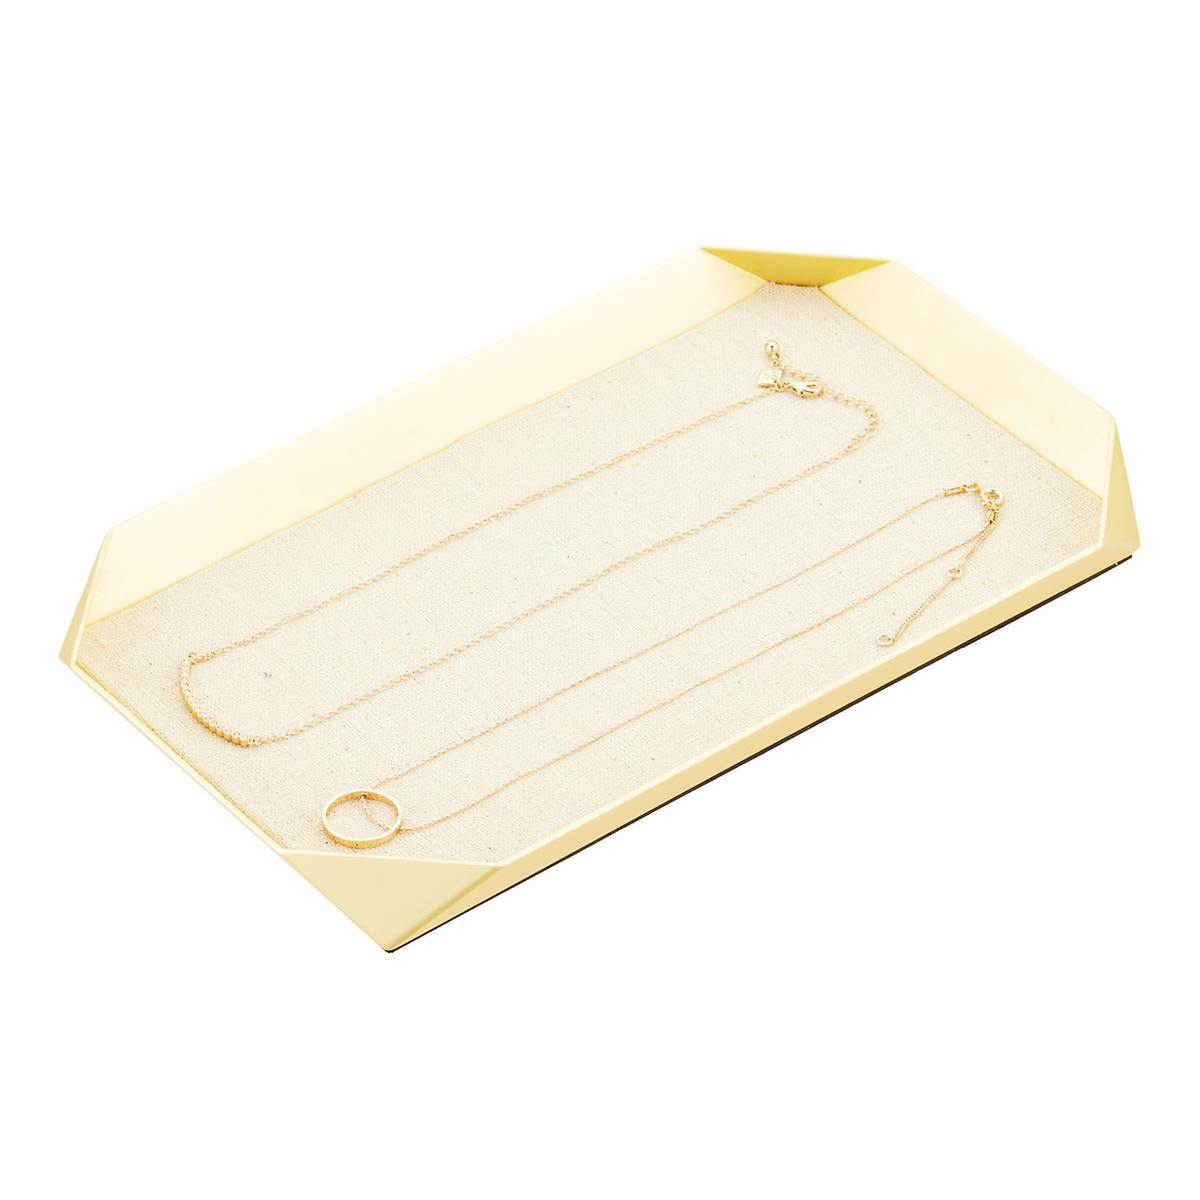 umbra gold jewelry tray with linen base the